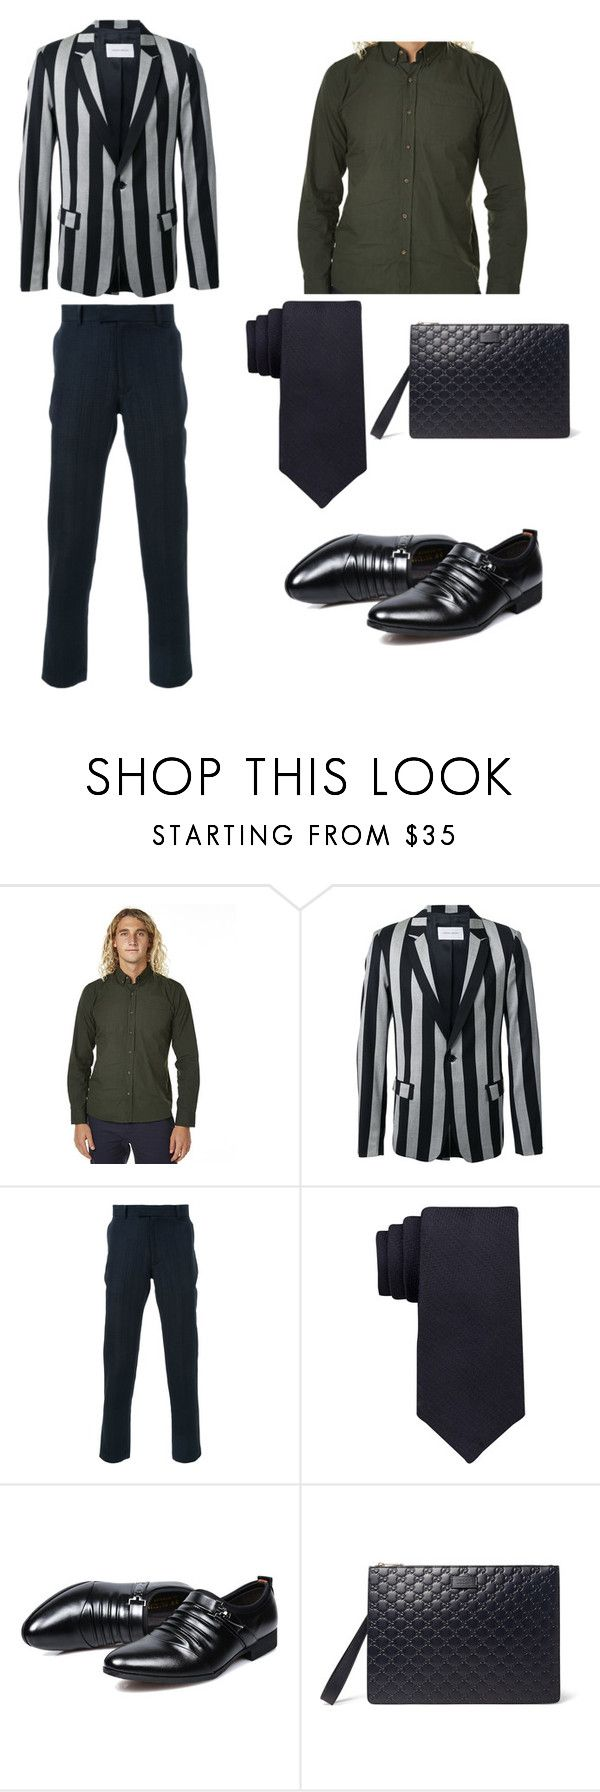 """Australian designer"" by sparklepieceblog on Polyvore featuring Vanishing Elephant, STRATEAS.CARLUCCI, Calvin Klein, men's fashion and menswear"